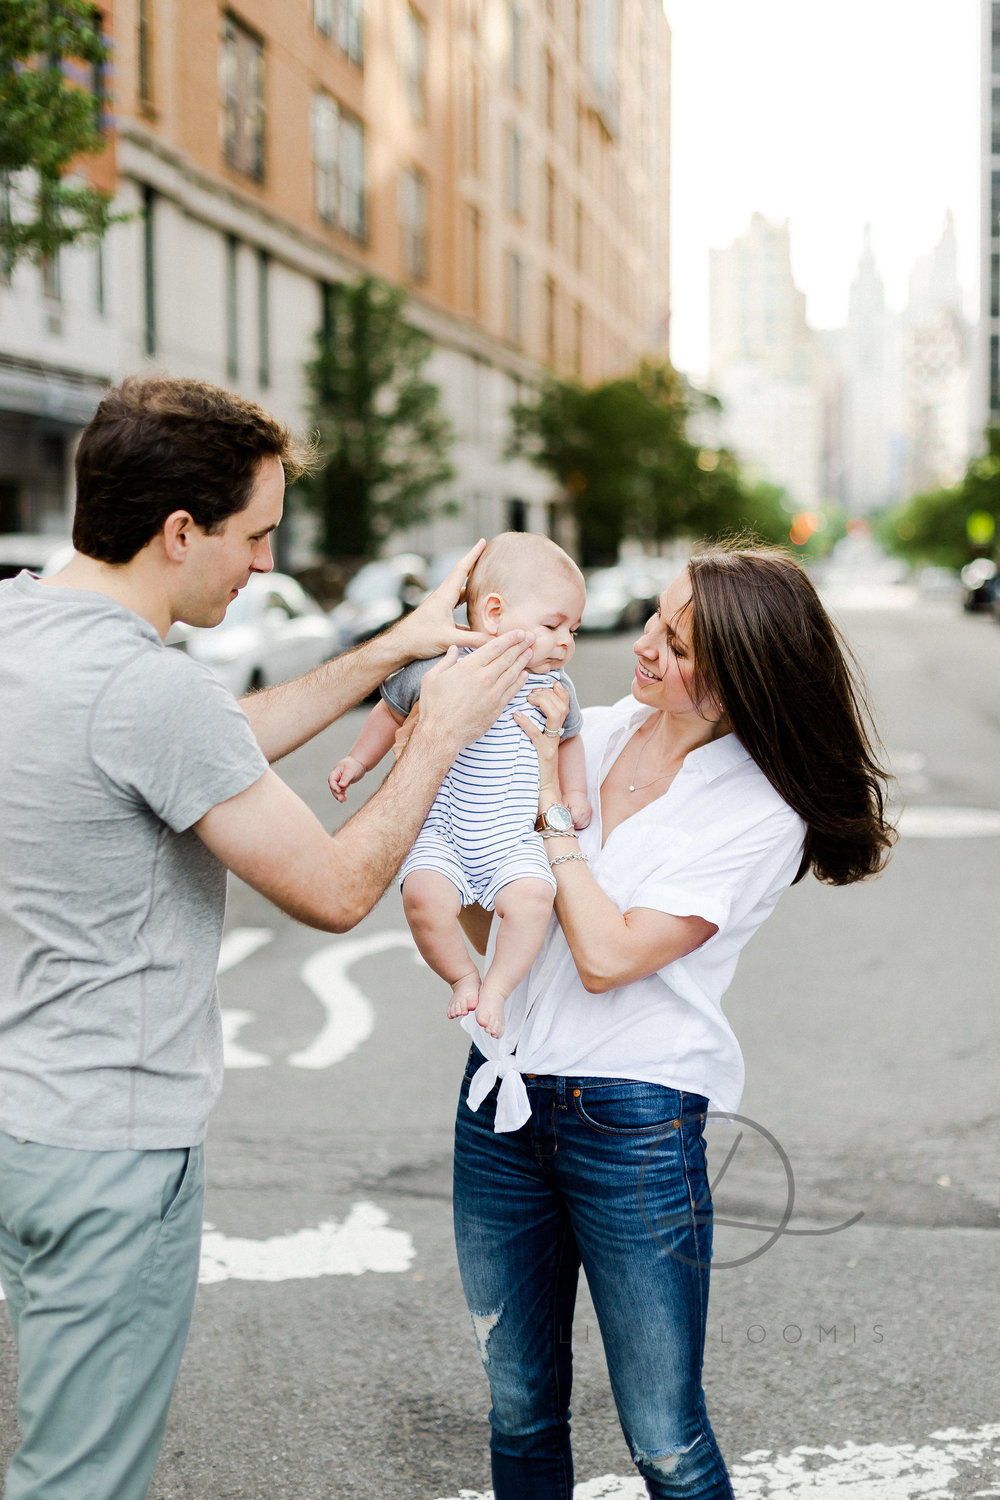 lissie-loomis-photo-newyorkcity-family-photography-baby-photographer-brooklyn6.JPG